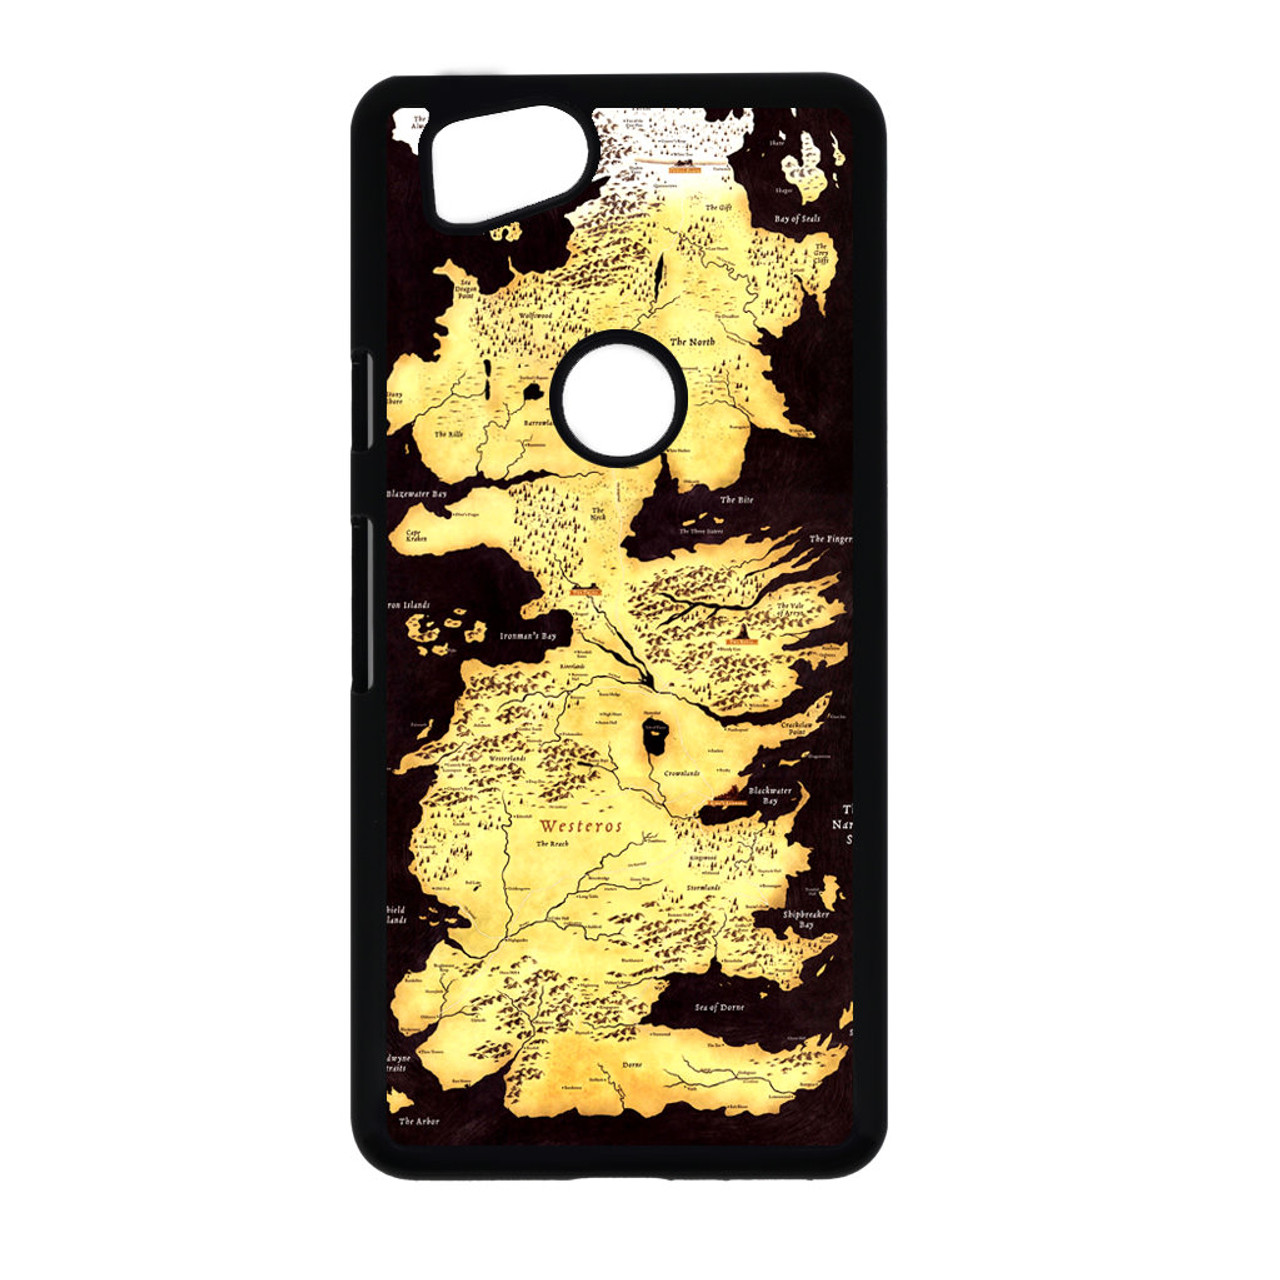 Game Of Thrones Westeros Map Google Pixel 2 Case Game Of Thrones Map Google on google map skins, google map arrow, google map dallas, google map scandal, google map rome, google map atlantis, google map nashville, google map fargo, google map zoo, google map united states,